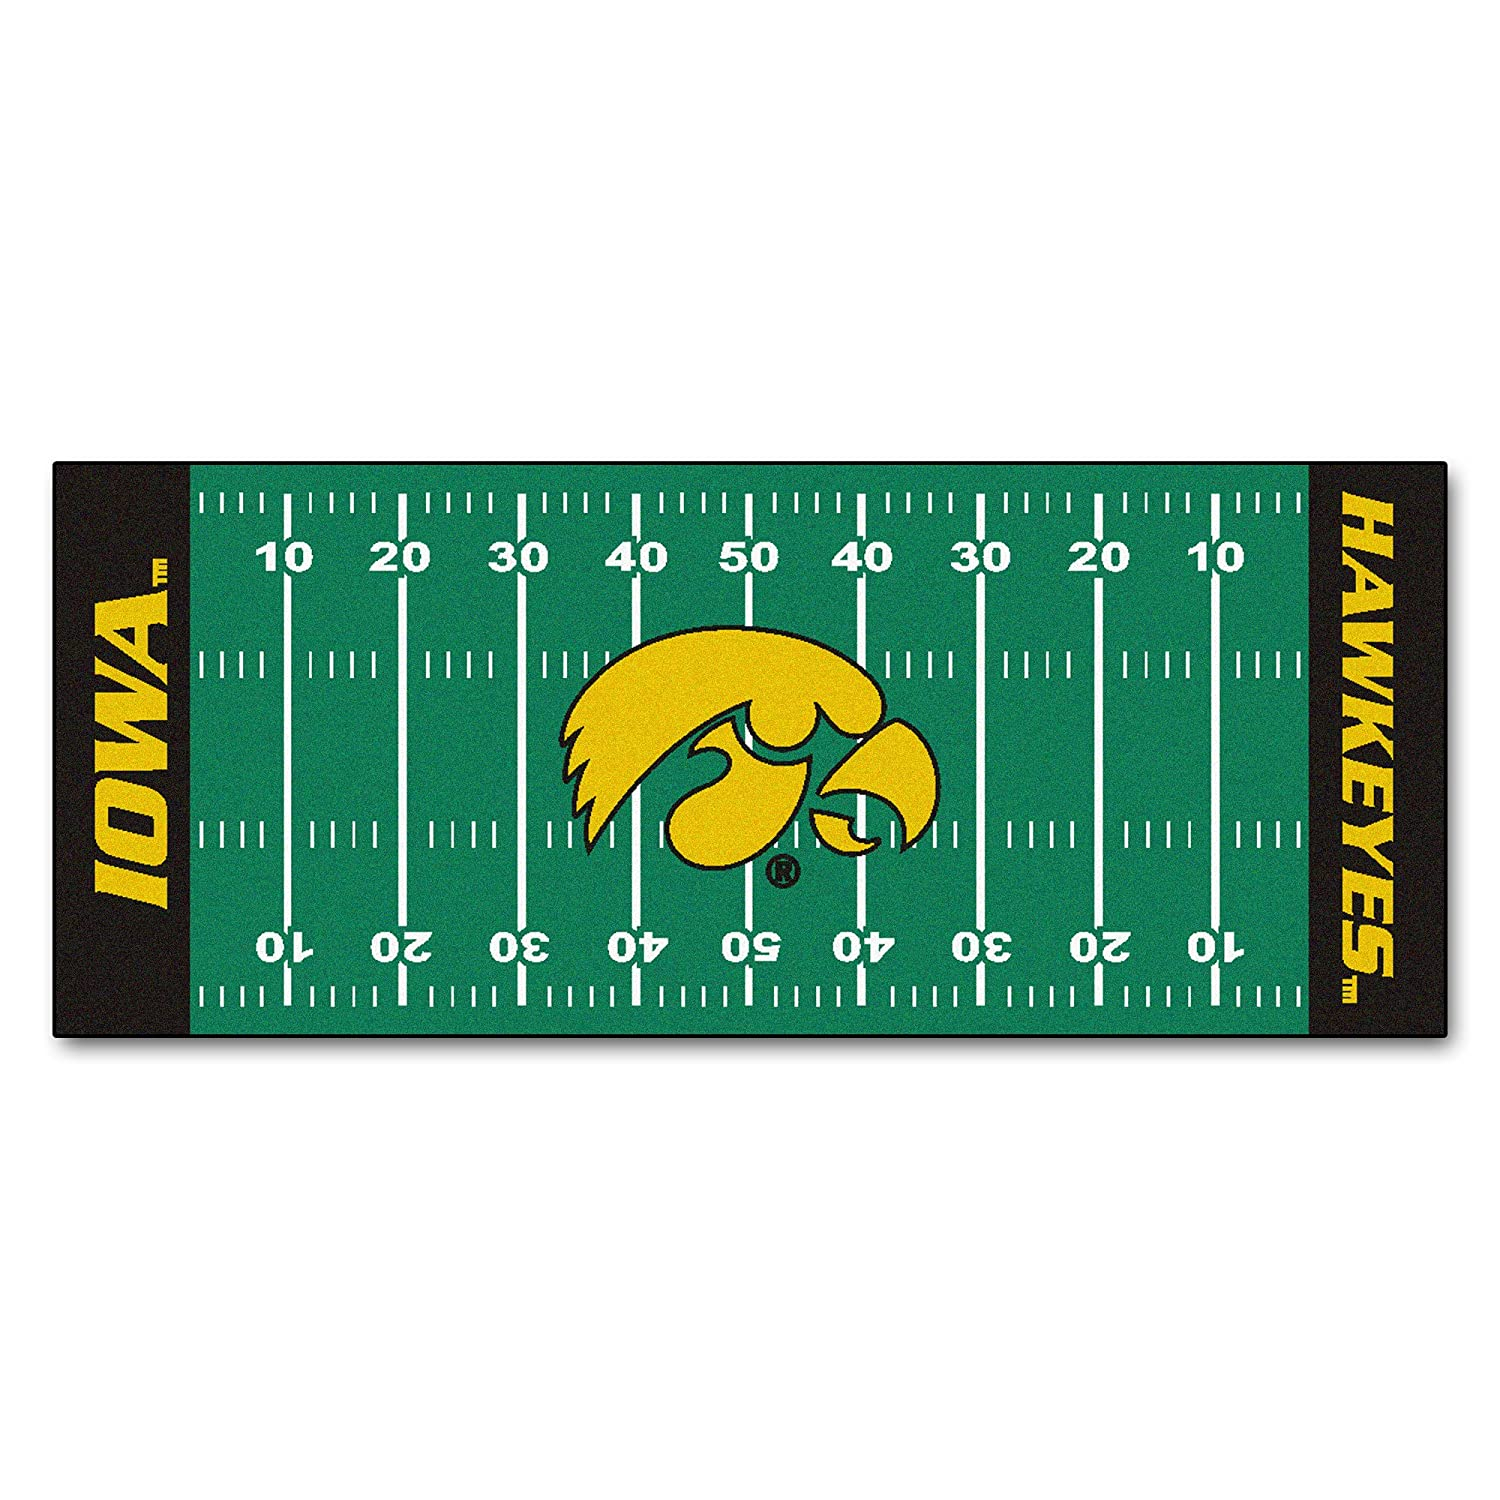 FANMATS NCAA University of Iowa Hawkeyes Nylon Face Football Field Runner 7542